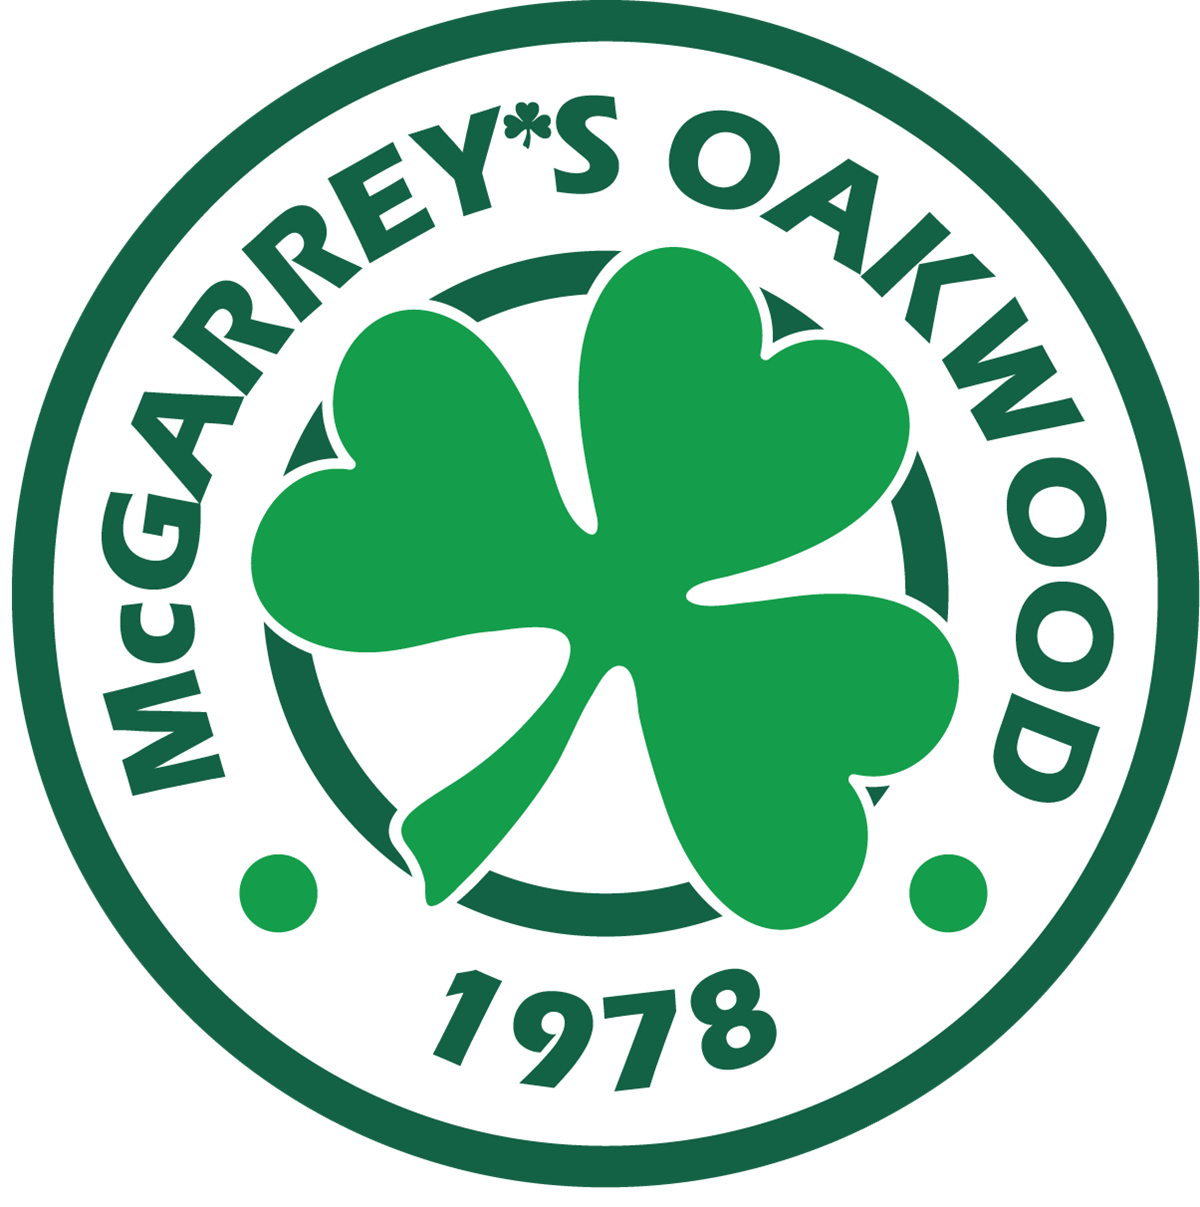 McGarrey's Oakwood Cafe - Homepage